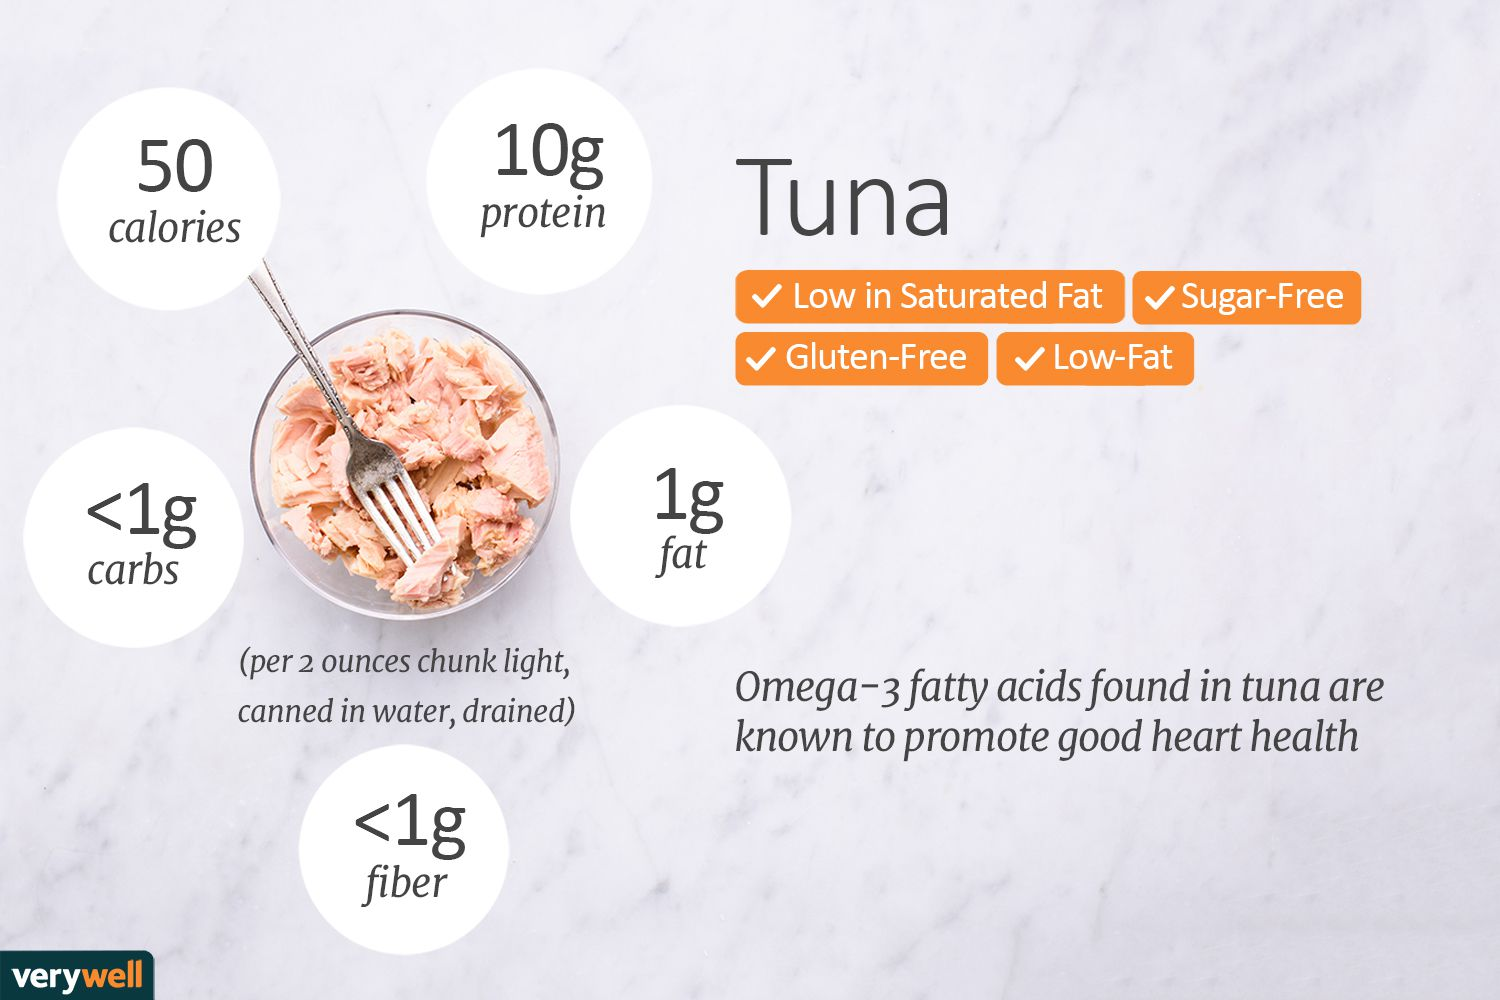 tuna nutrition facts calories carbs and health benefits. Black Bedroom Furniture Sets. Home Design Ideas